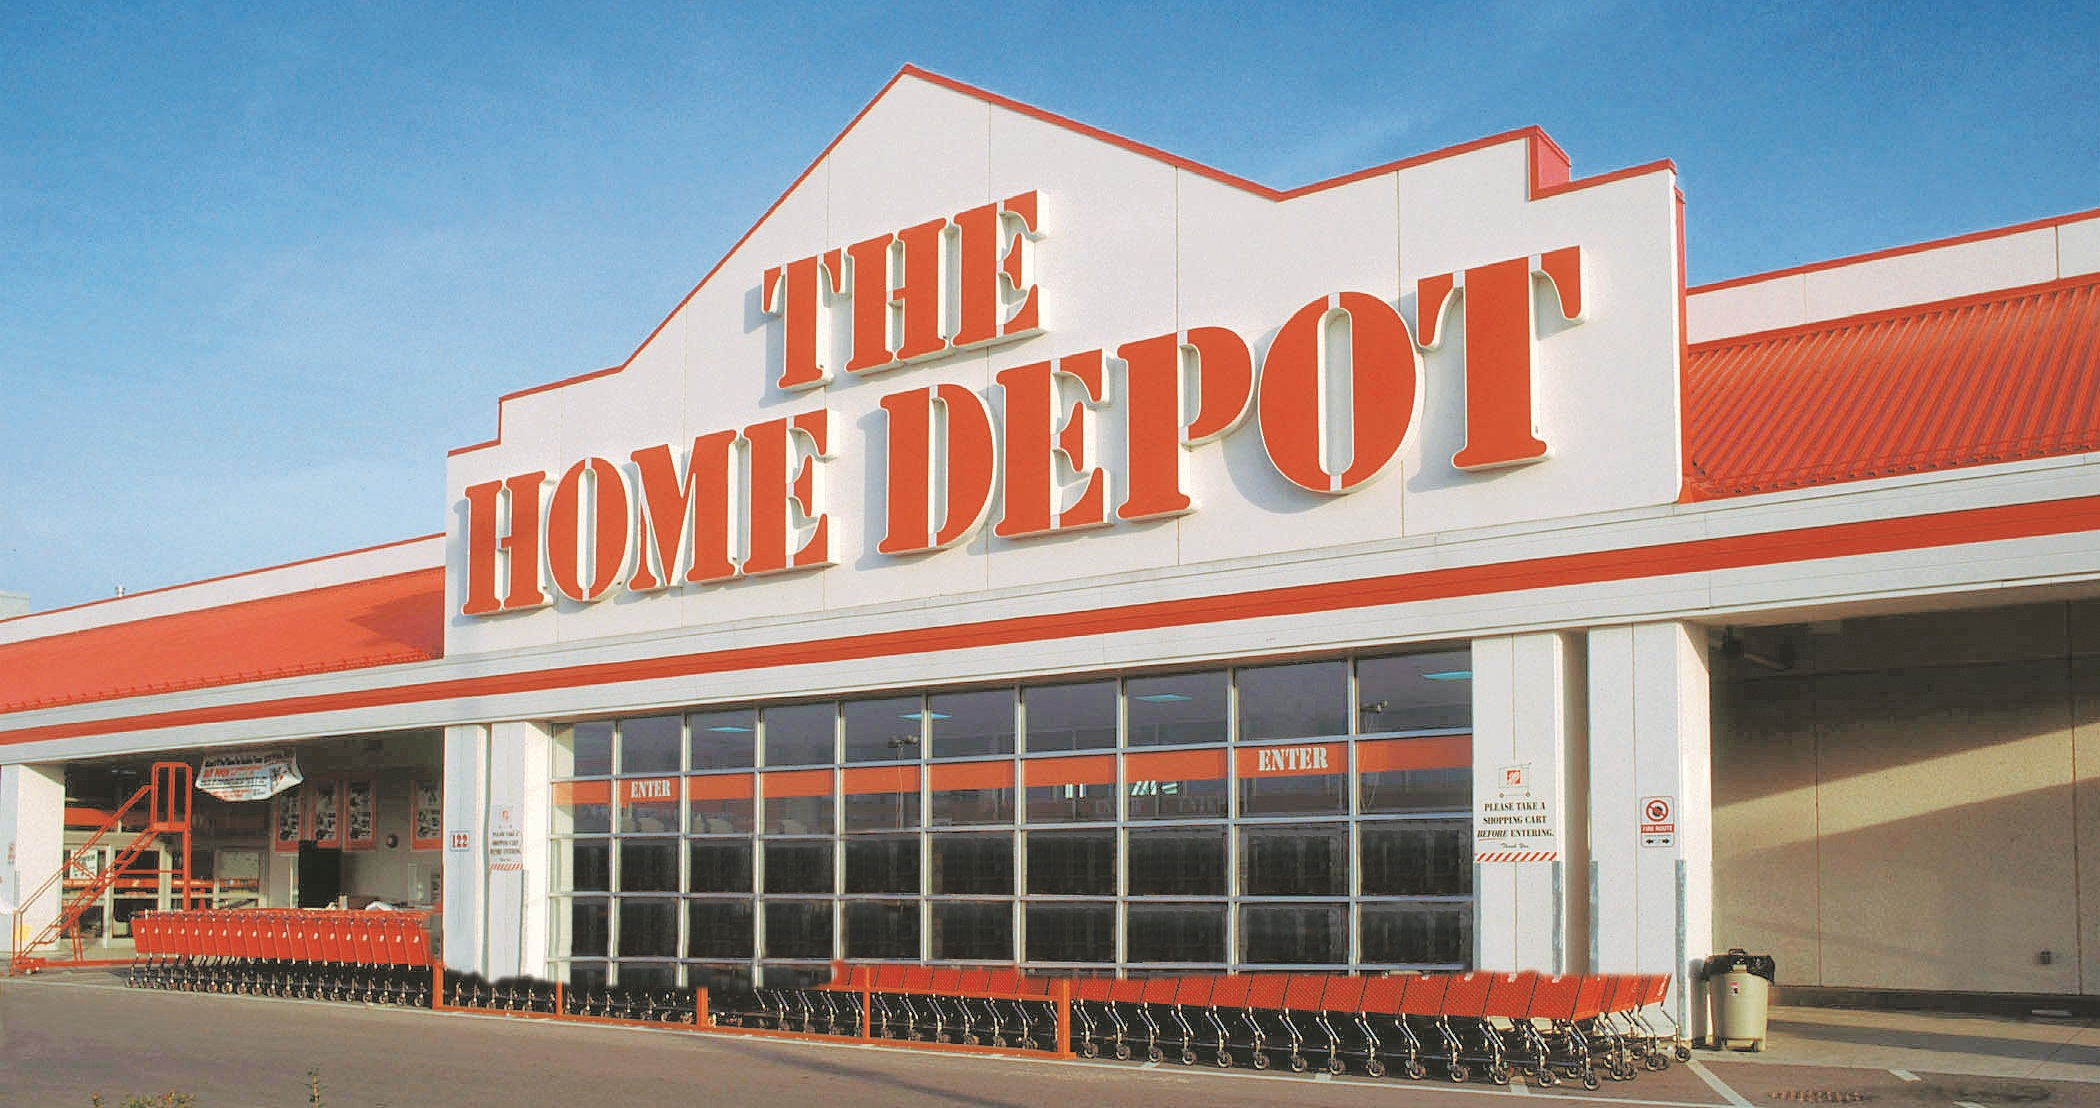 the home depot forecasting in the mexico Home depot (nyse: hd) is the largest retailer of home improvement goods in the worldhome depot sells everything you would need to build a home -- from tools to paint it operates 2,200+ stores throughout the us, mexico, canada, and china, offering products and services to end consumers as well as to professional builders, tradesmen, and repairmen.